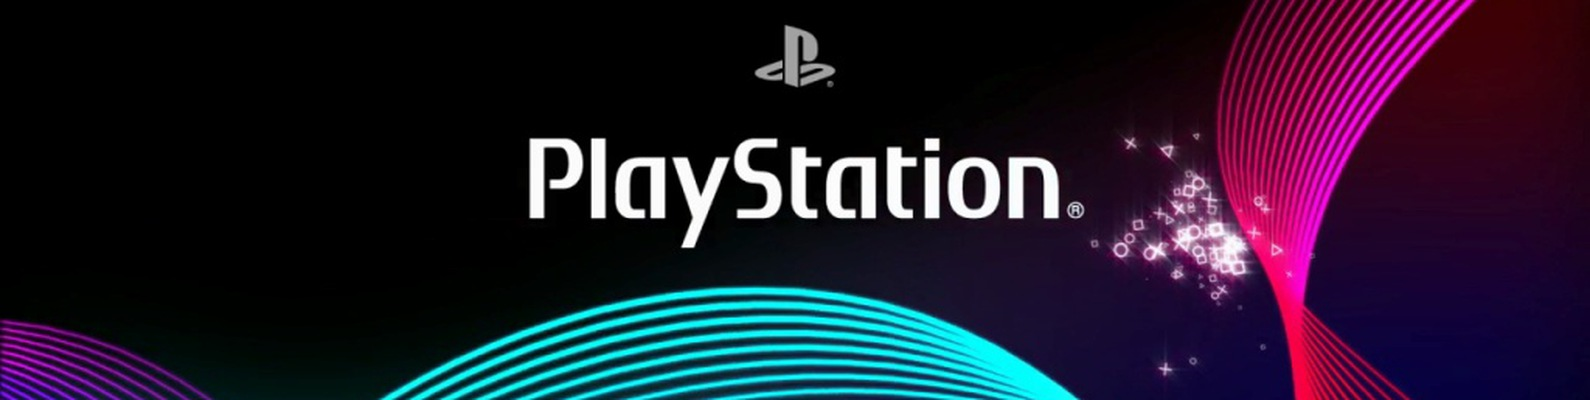 official playstationstore us home of playstation games - 1590×400